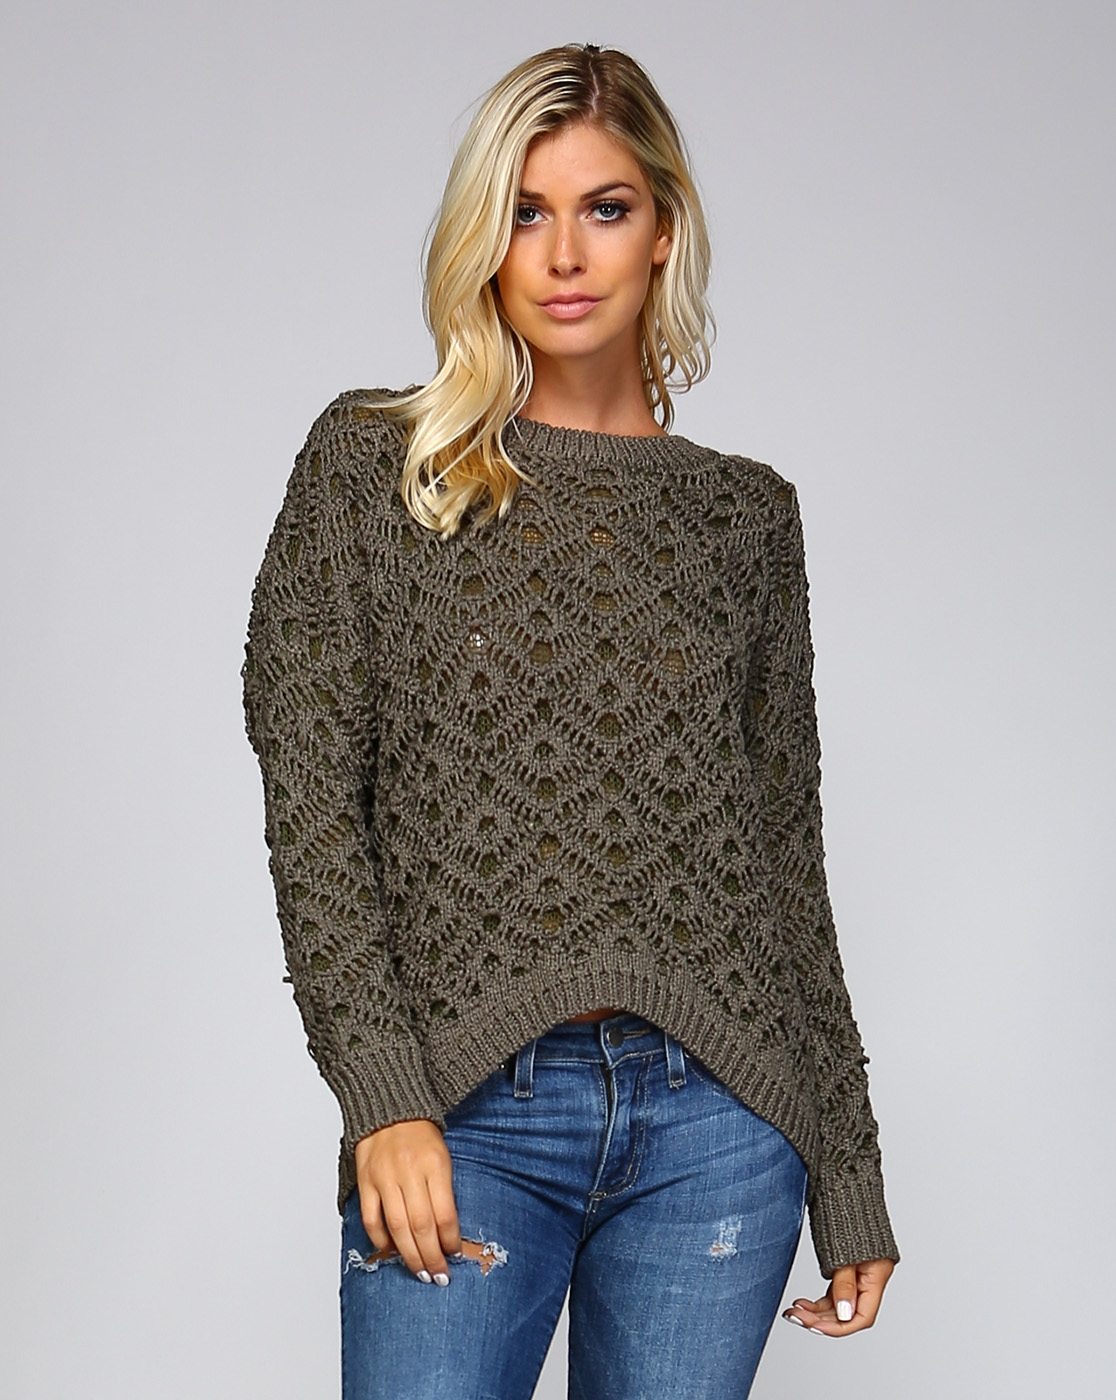 DOUBLE KNIT HIGH LOW SWEATER - orangeshine.com